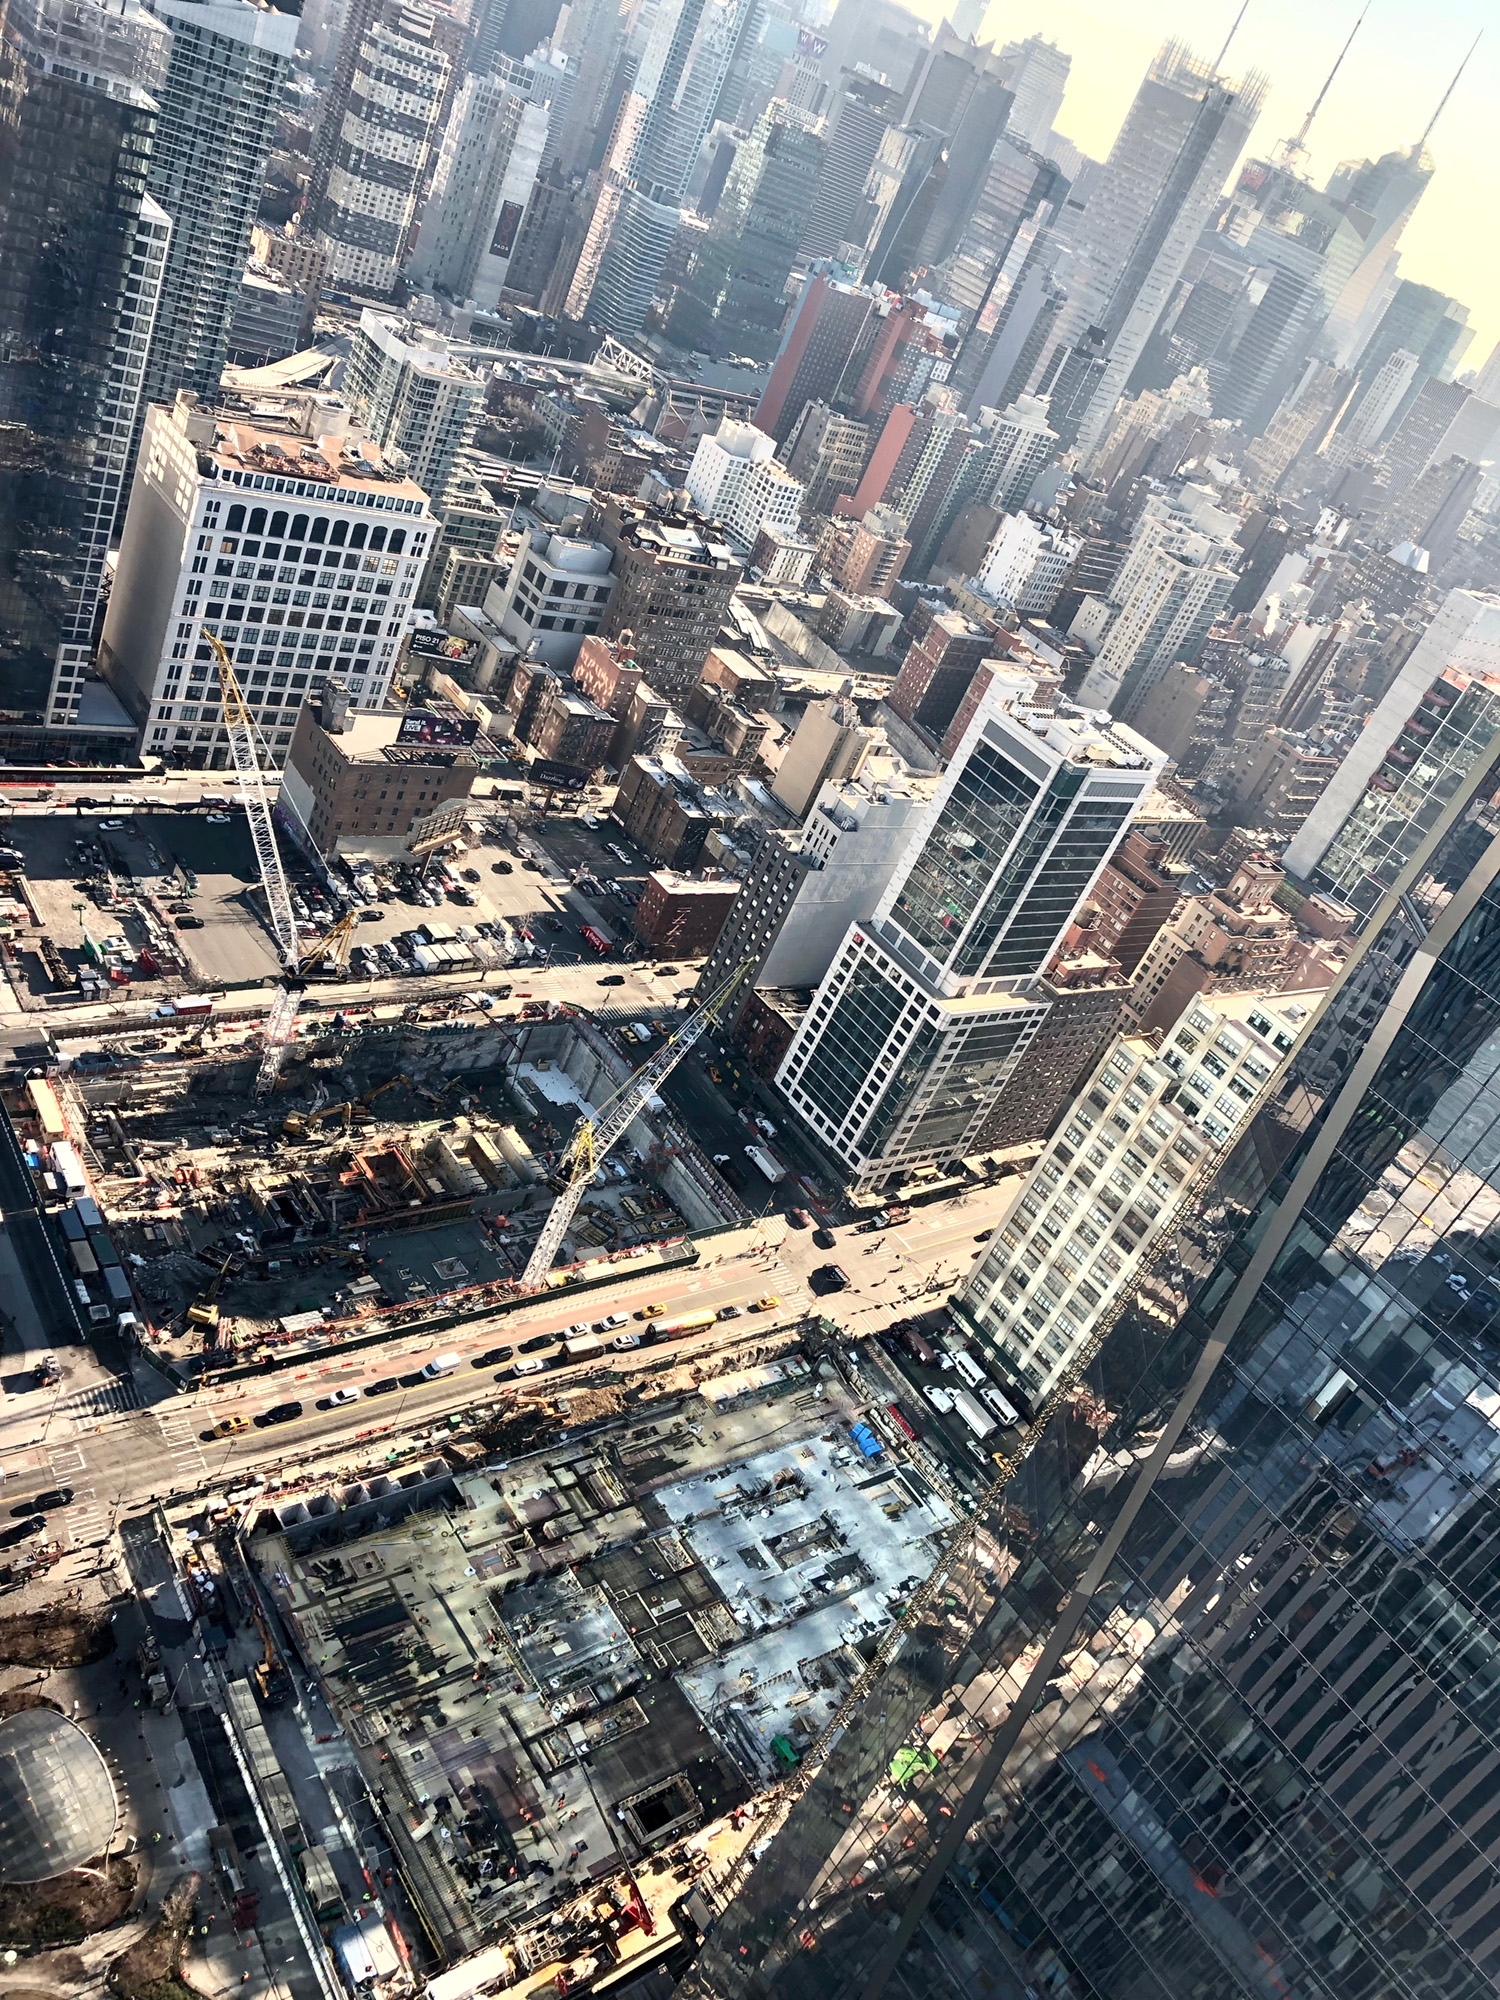 New York The Spiral 509 W 34th 1 041 Ft 66 Floors Page 41 Skyscraperpage Forum